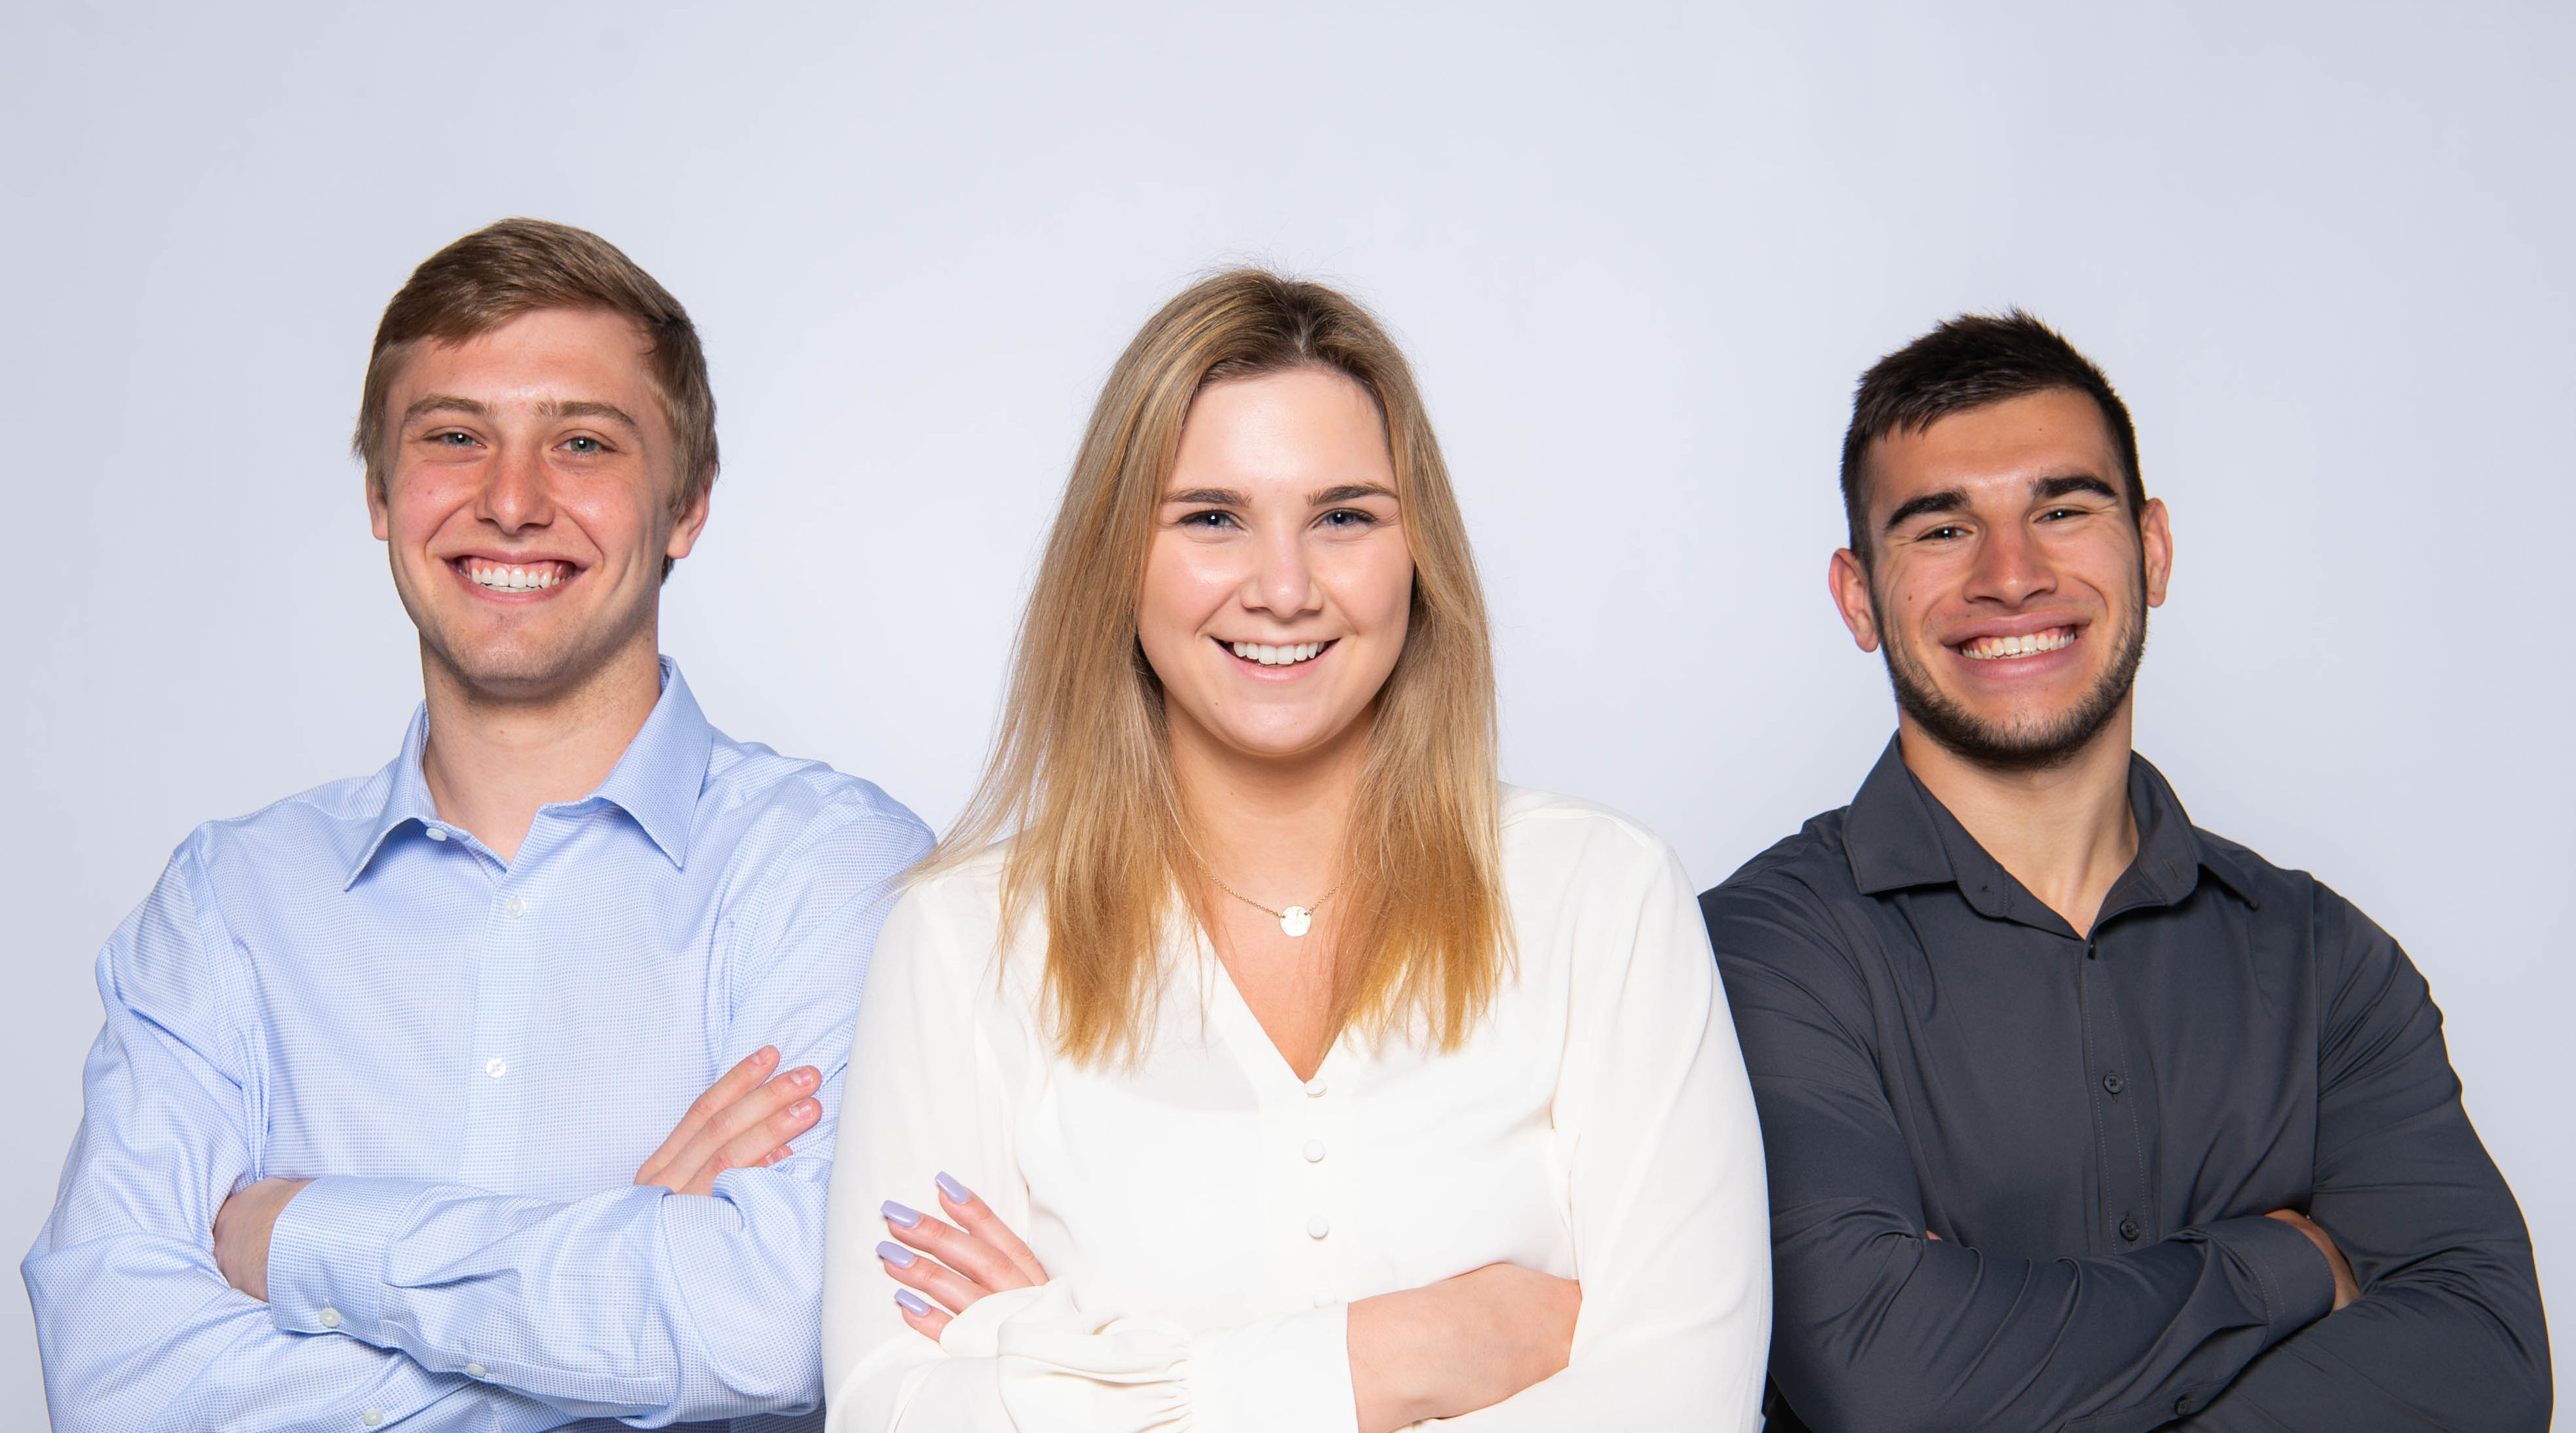 Photo of UW-Oshkosh student team helping to promote an entrepreneurial venture